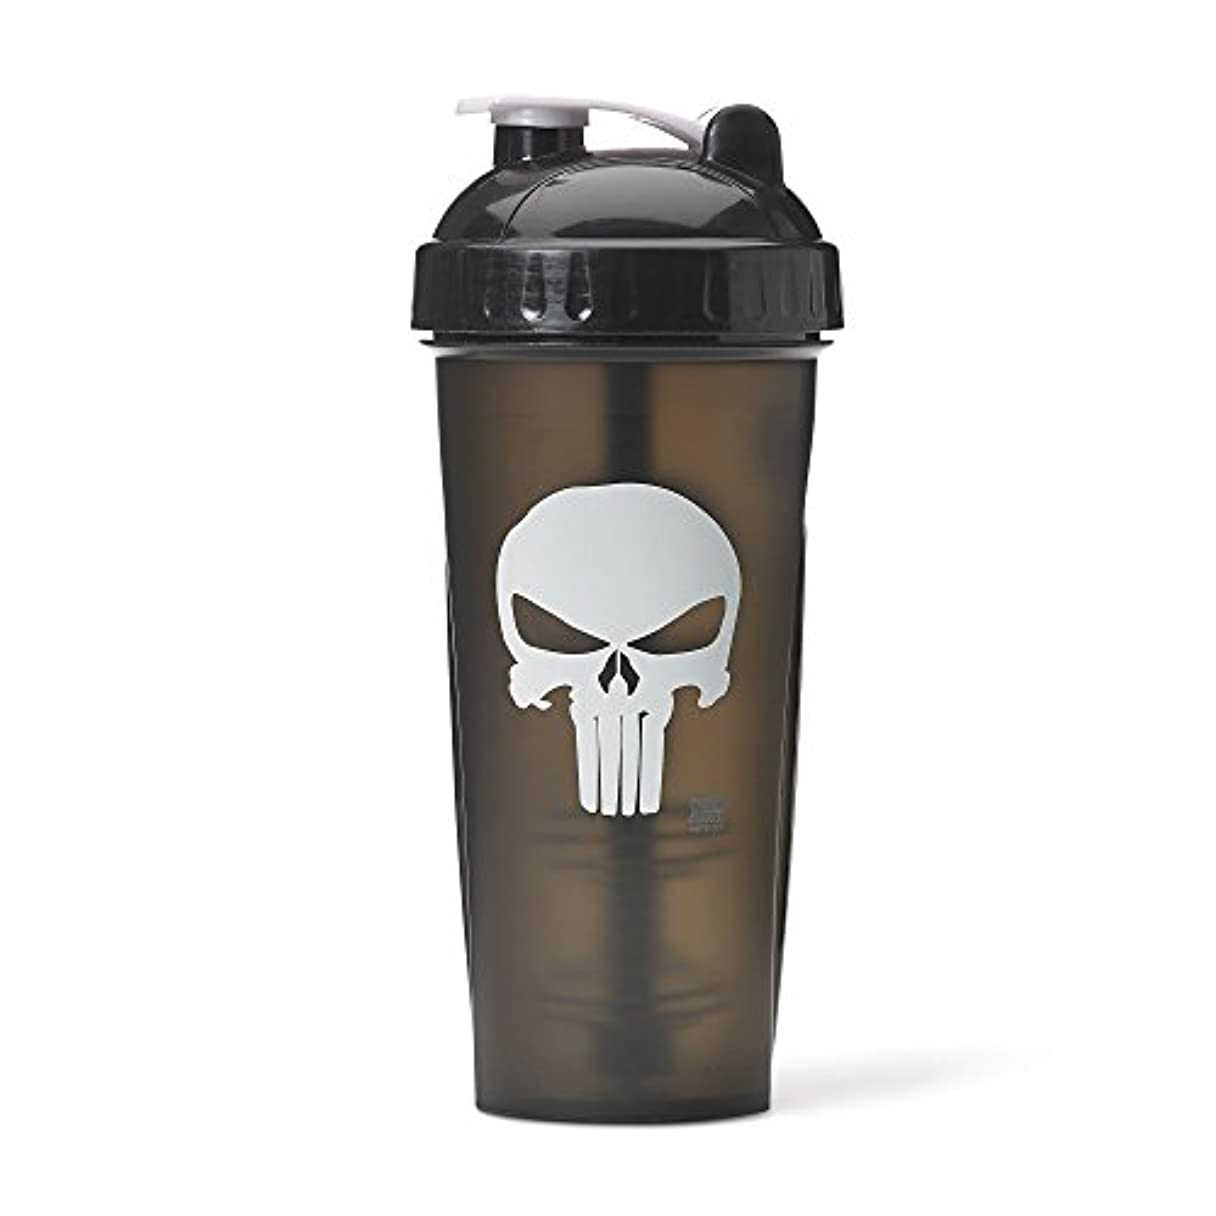 肥満マーカーそれにもかかわらずPerforma Marvel Shaker - Original Series, Leak Free Protein Shaker Bottle with Actionrod Mixing Technology for...